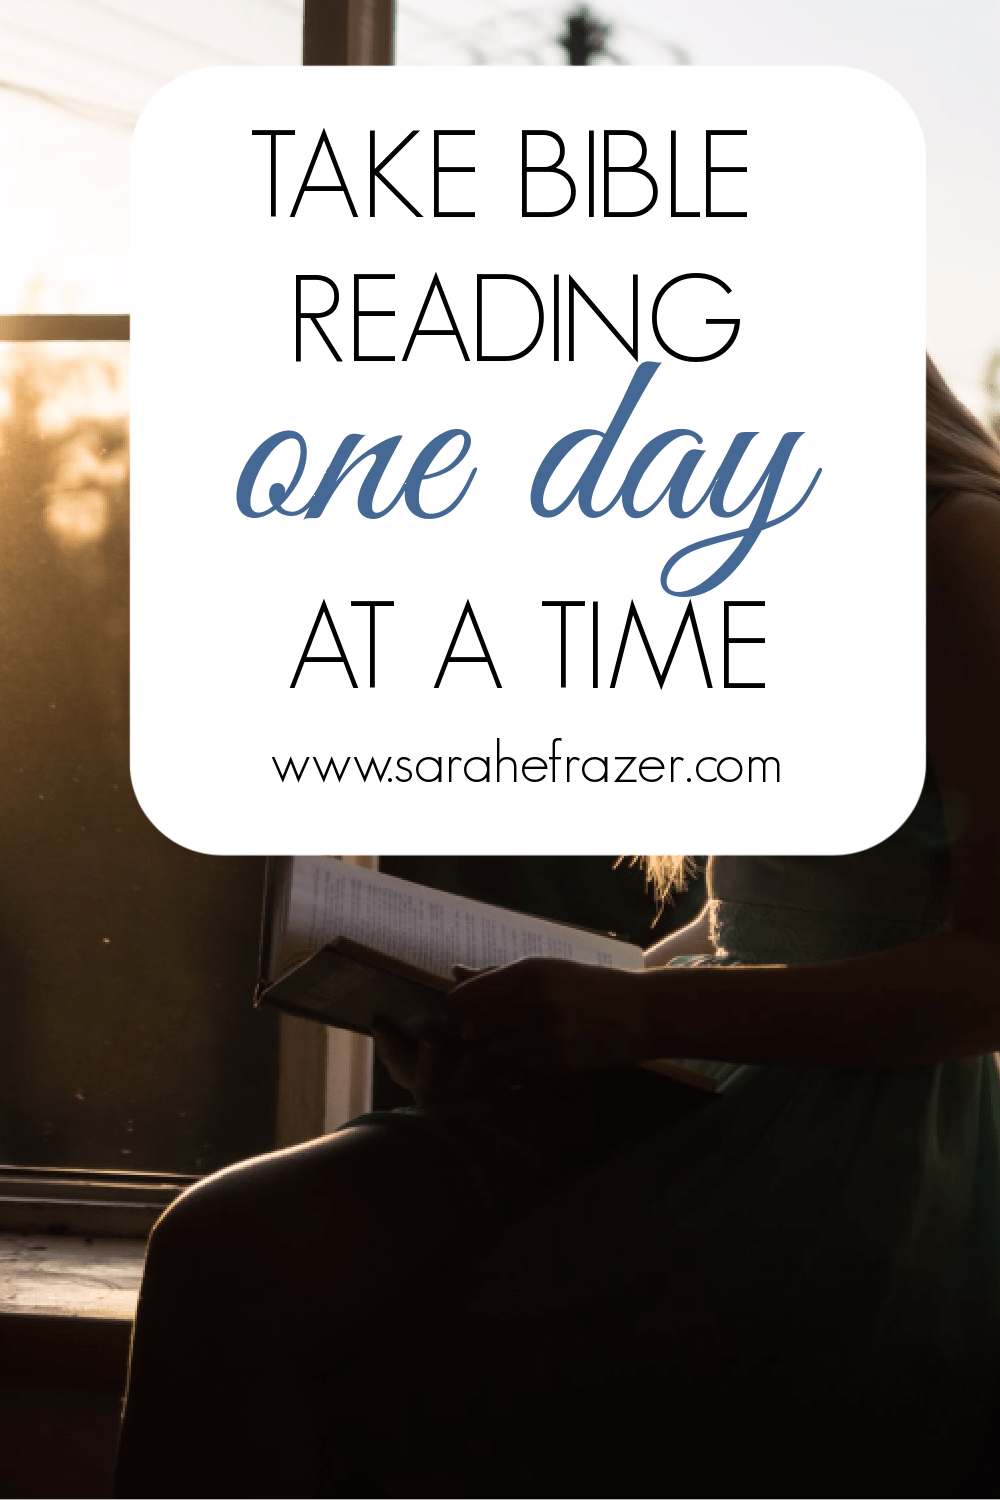 Taking Bible Reading One Day at a Time